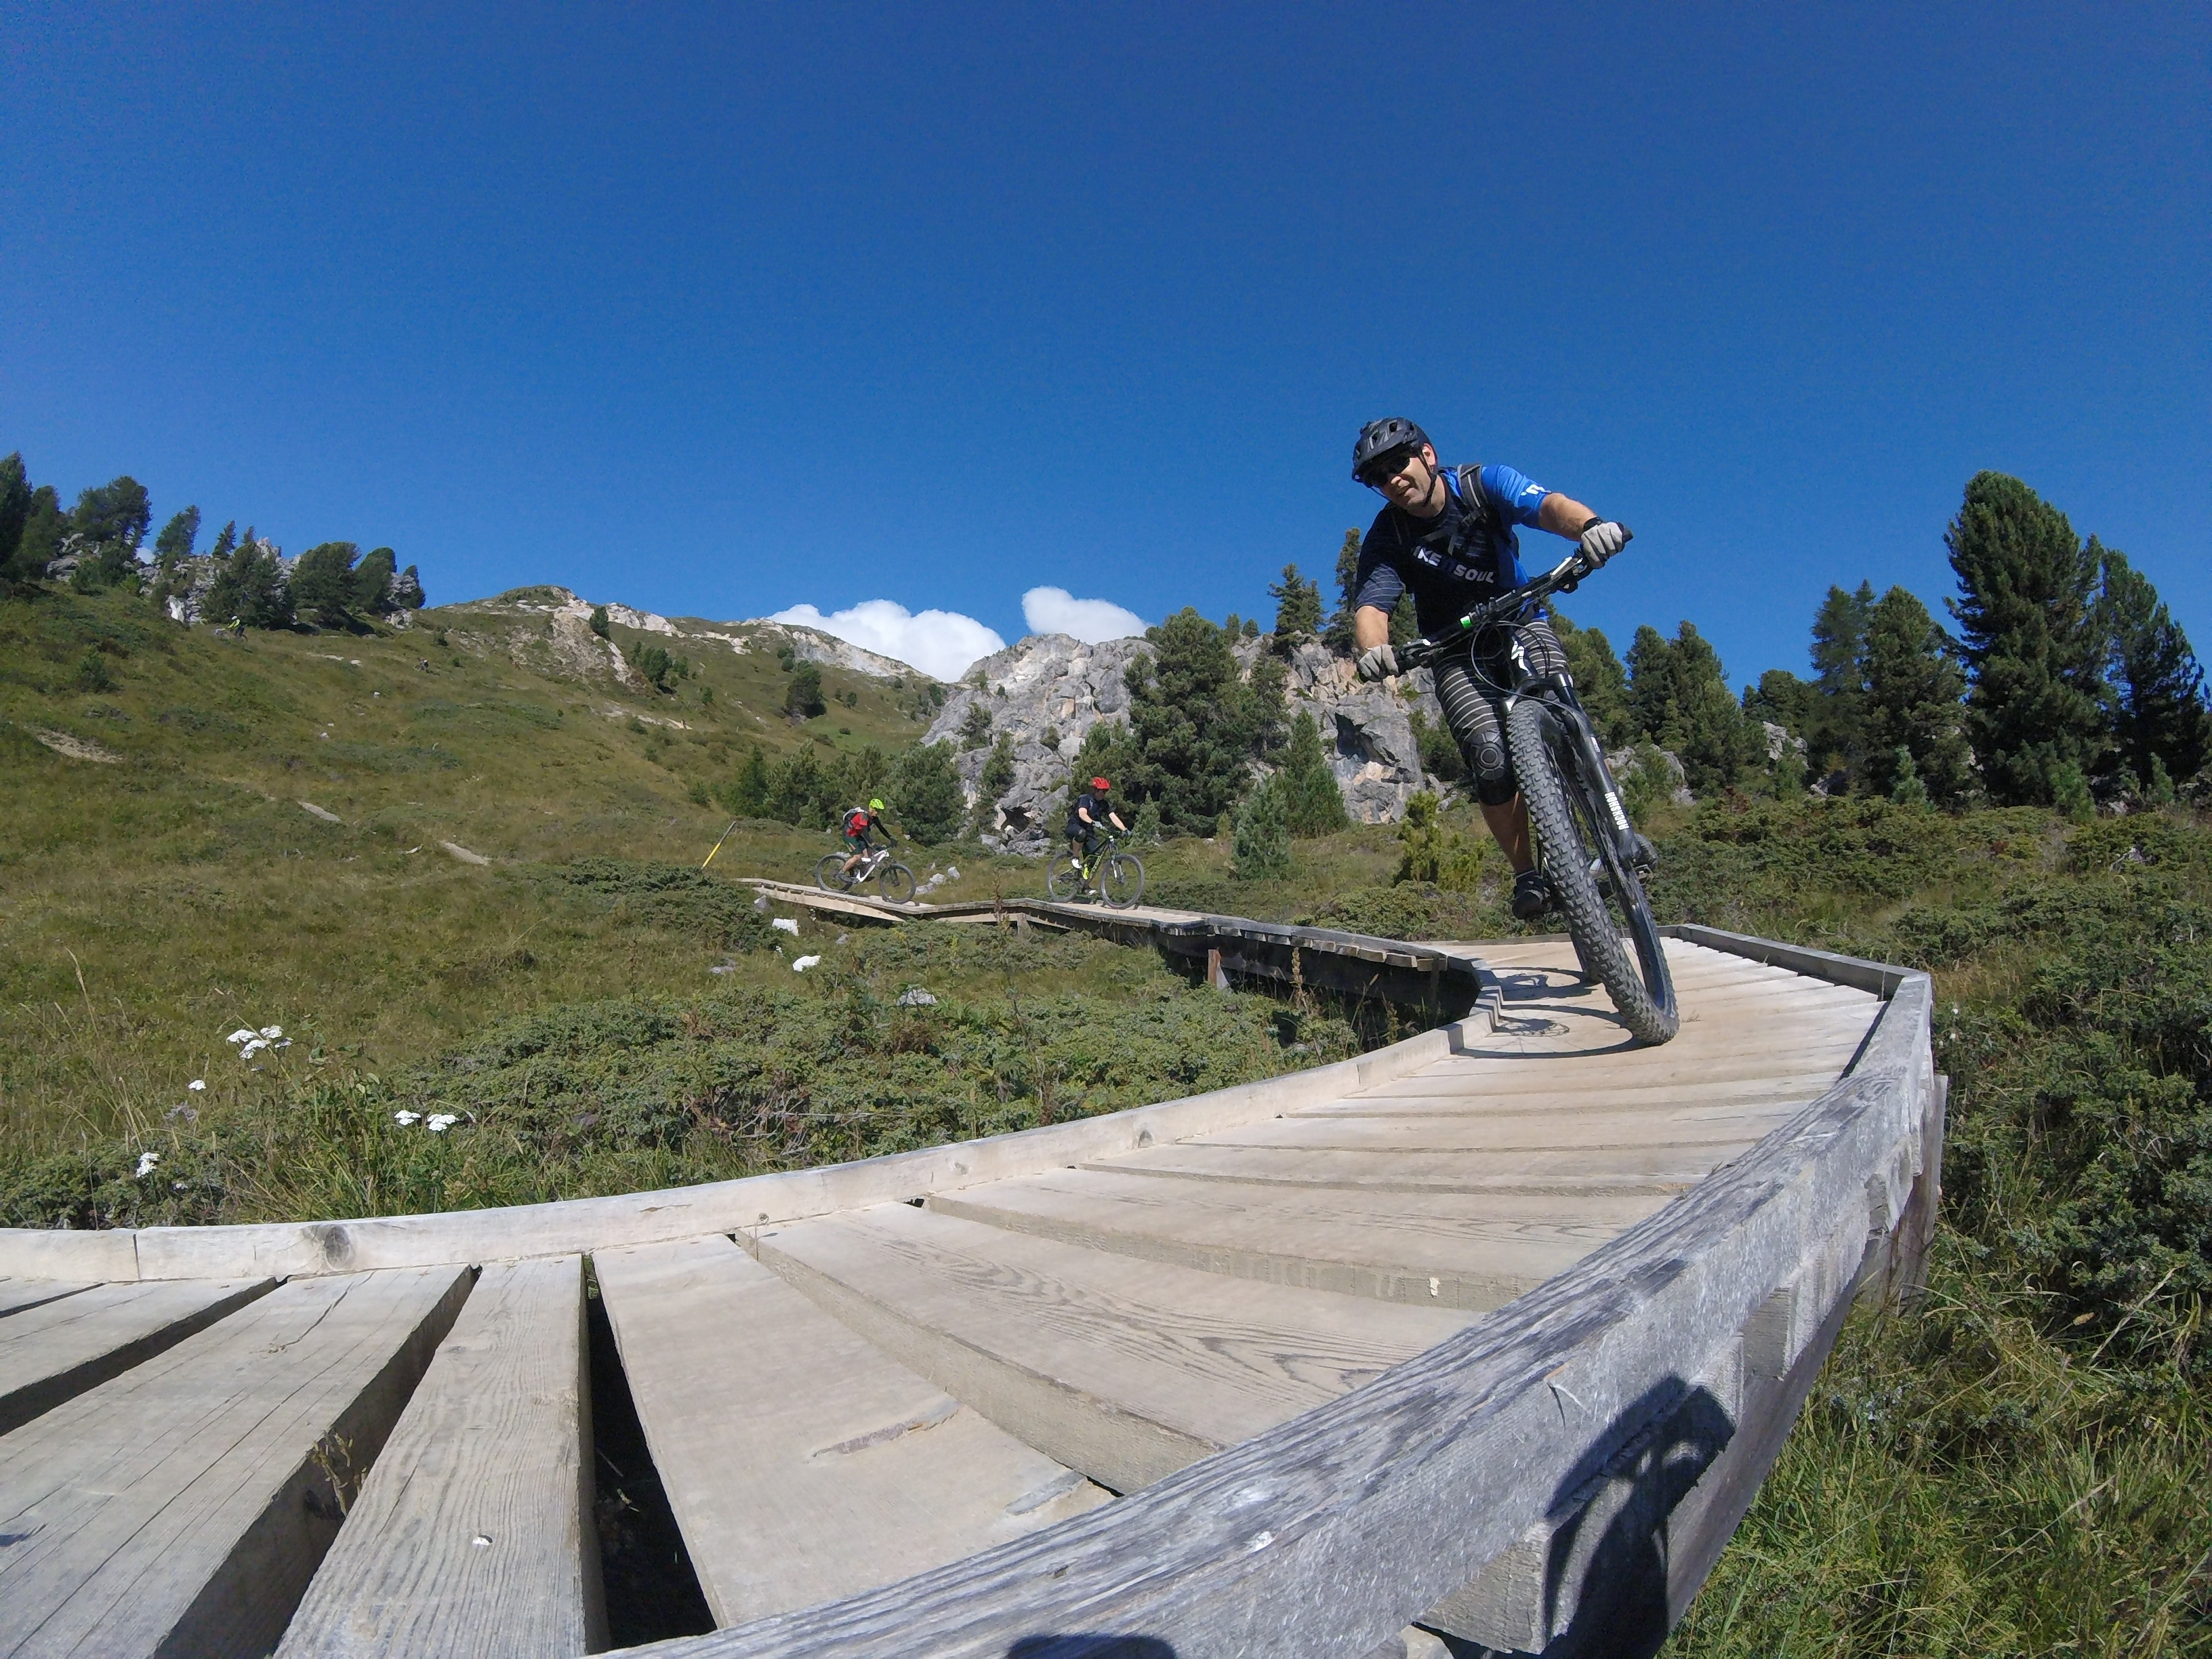 BIKE SCHOOL ENGADIN  - SKILLS & TRAILS Slide 1